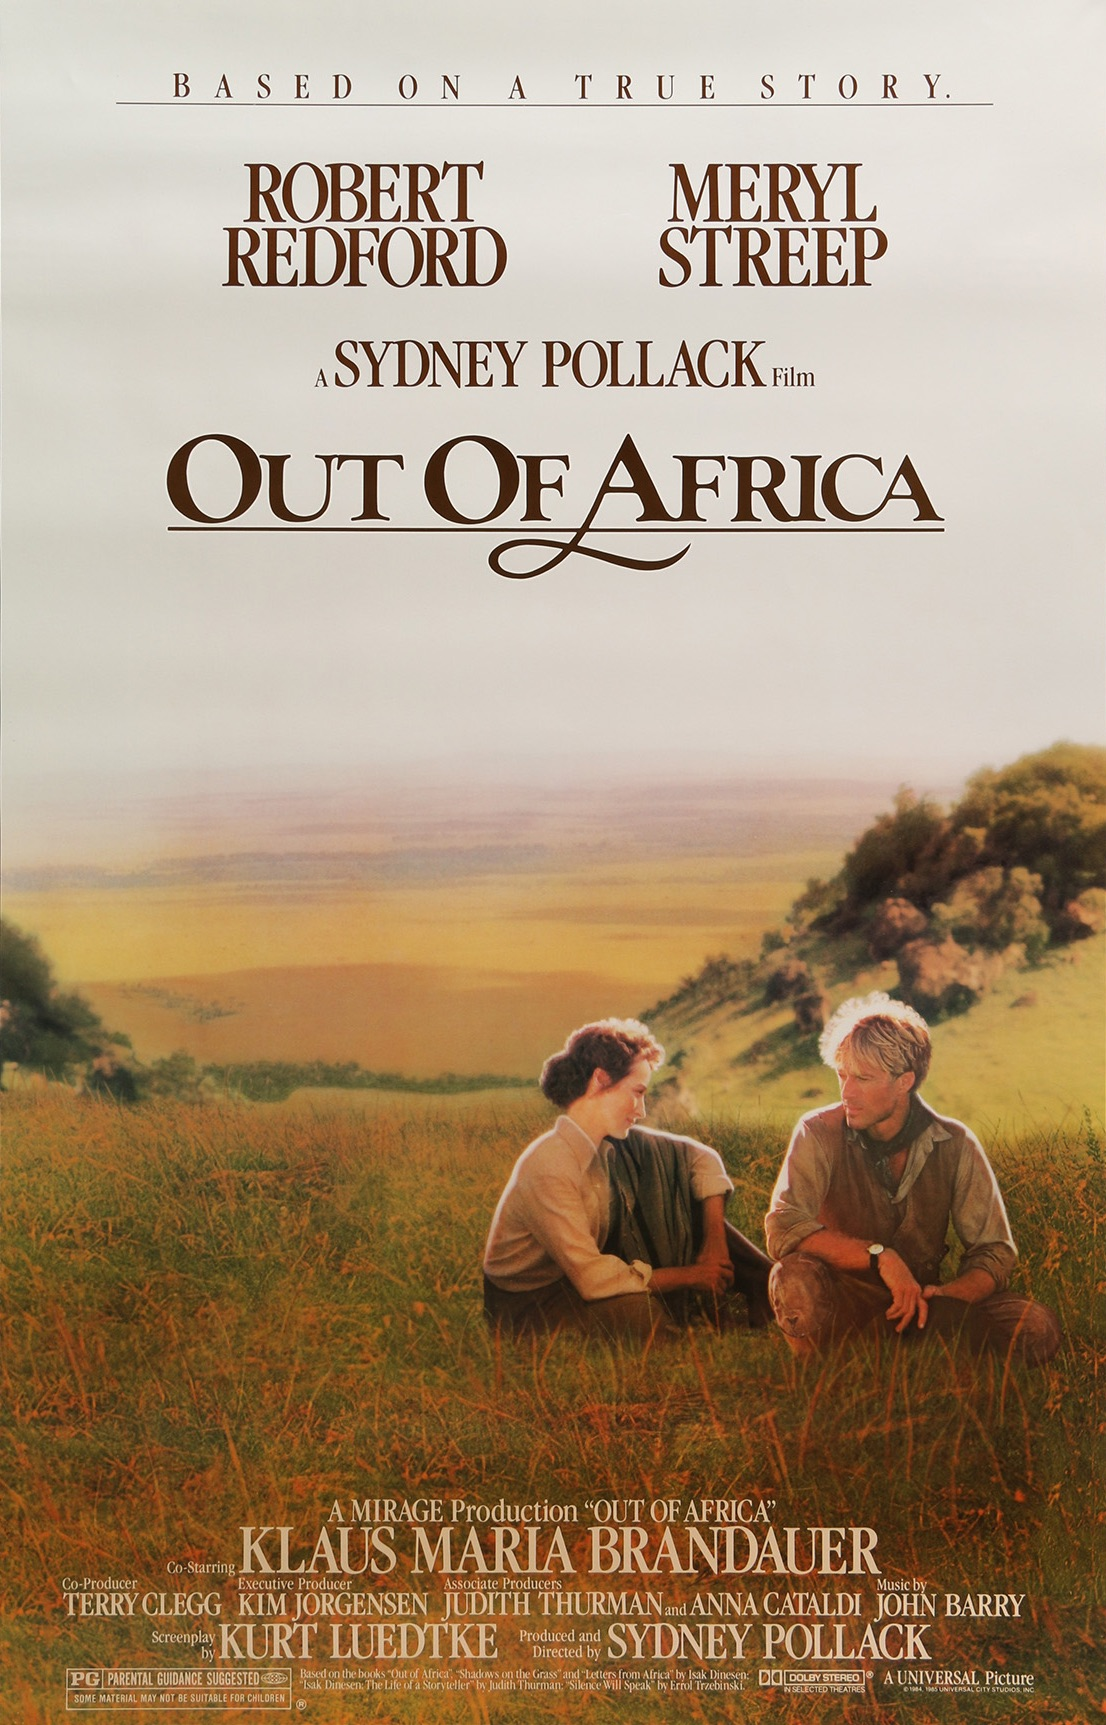 out-of-africa-poster.jpg